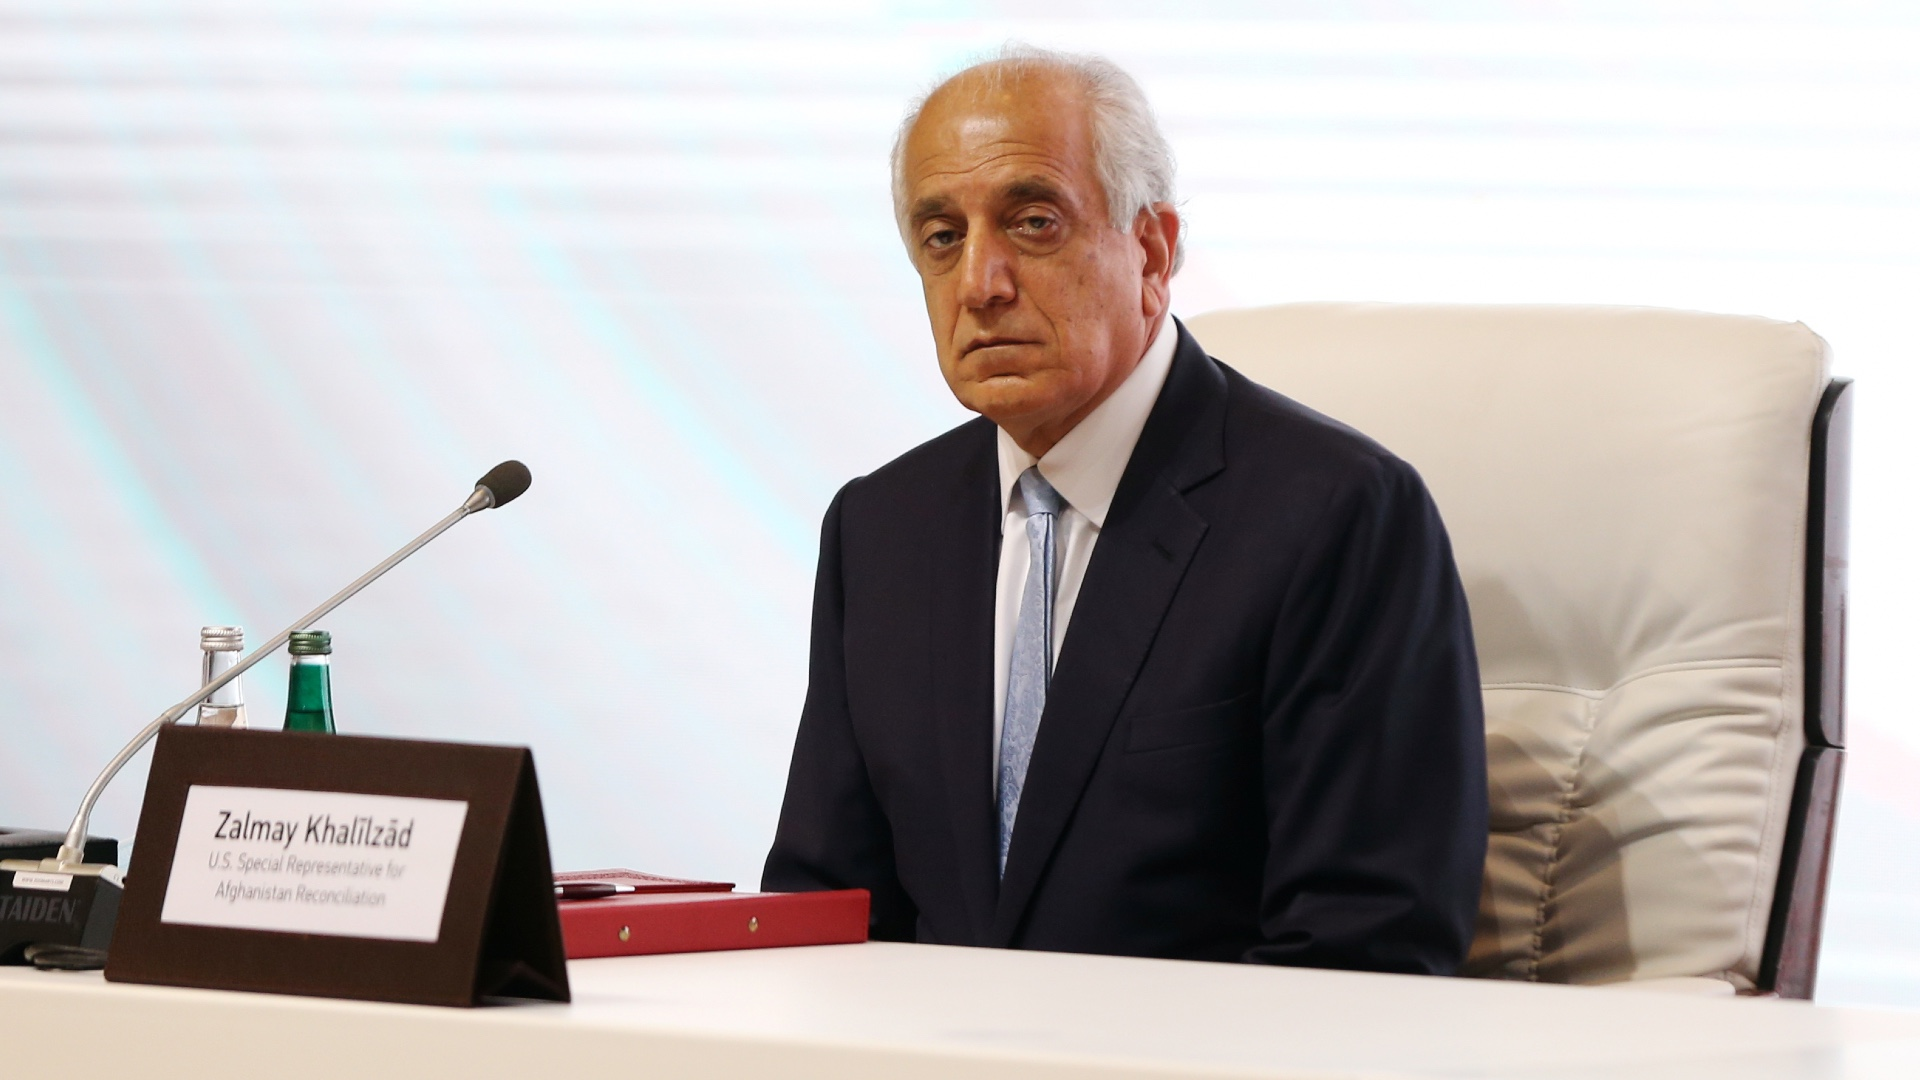 US envoy Khalilzad: We are watching the Afghan peace process